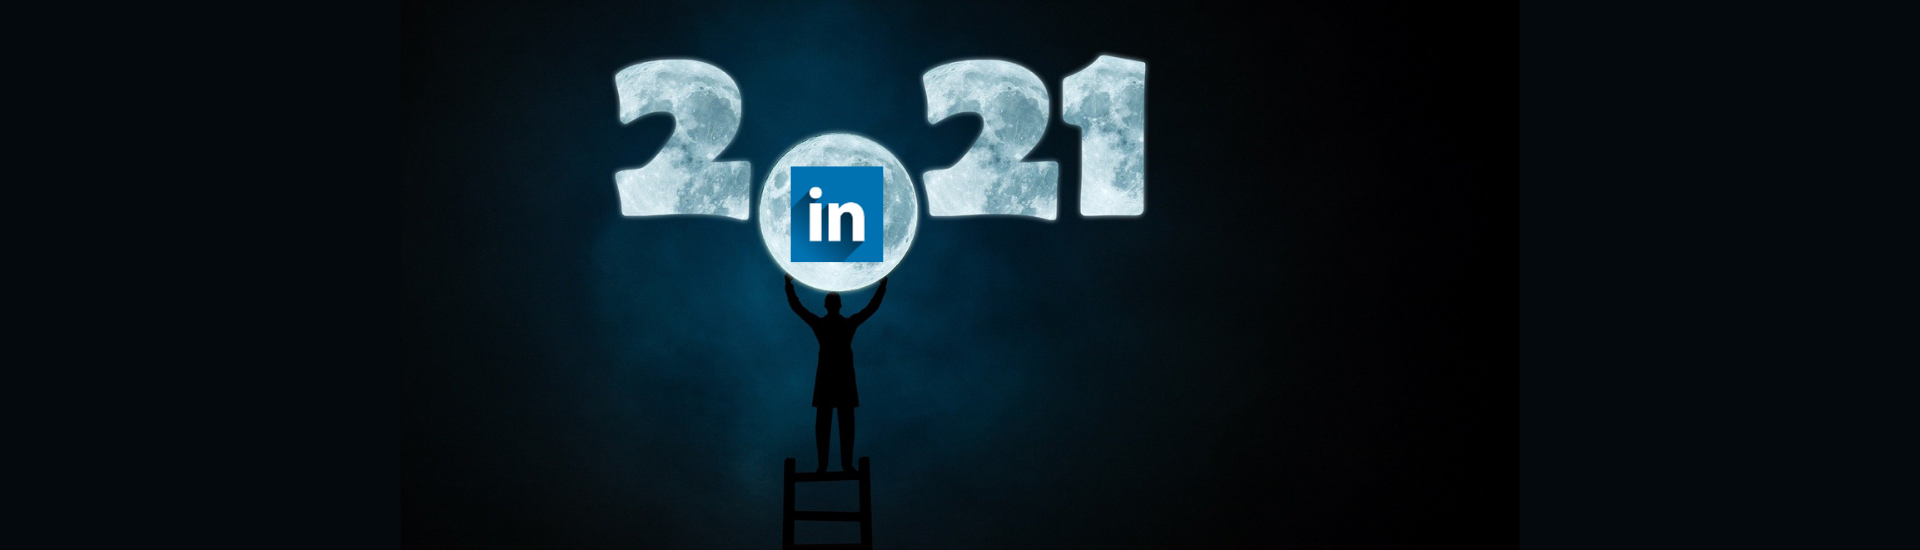 How to market on LinkedIn tips 2021